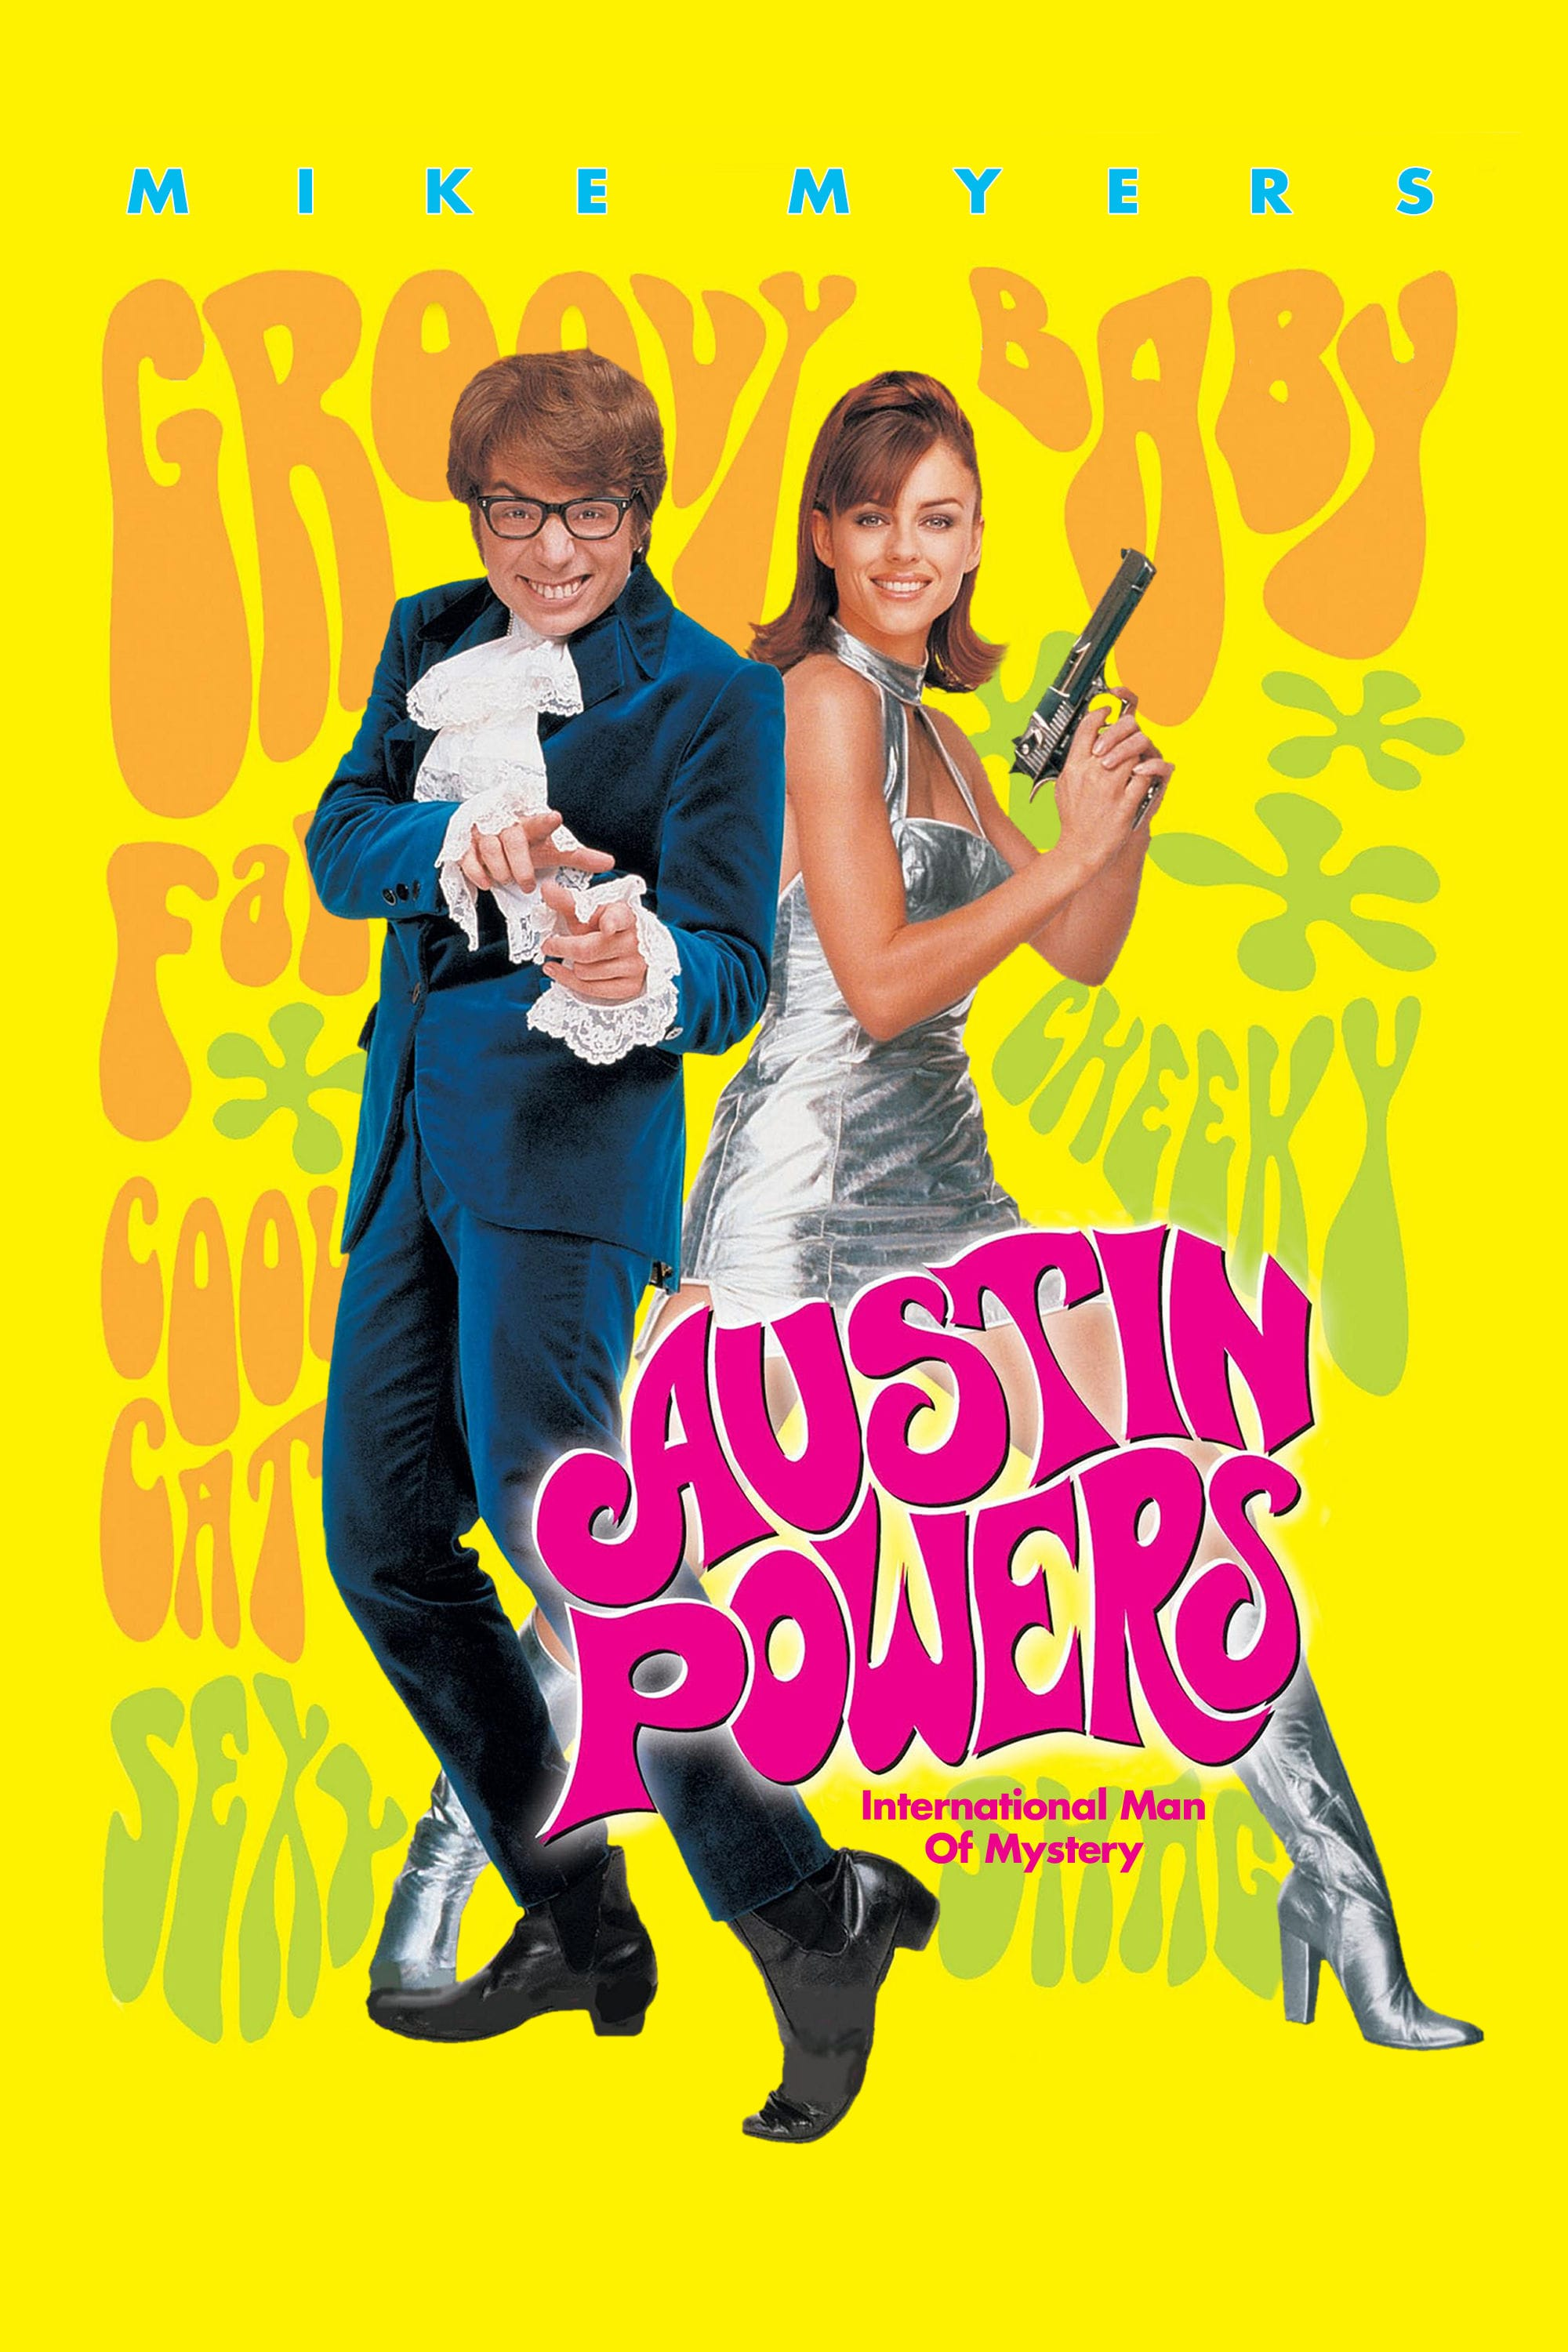 austin-powers-international-man-of-mystery-filming-locations-poster